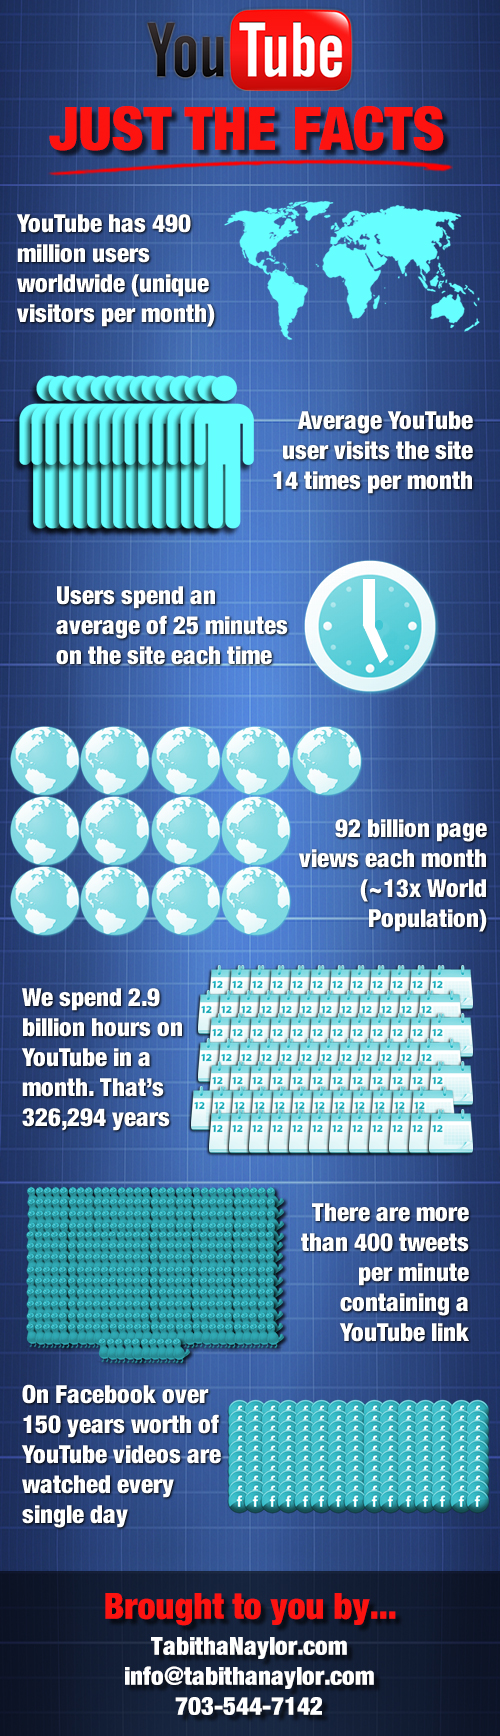 YouTube_Infographic_Editable